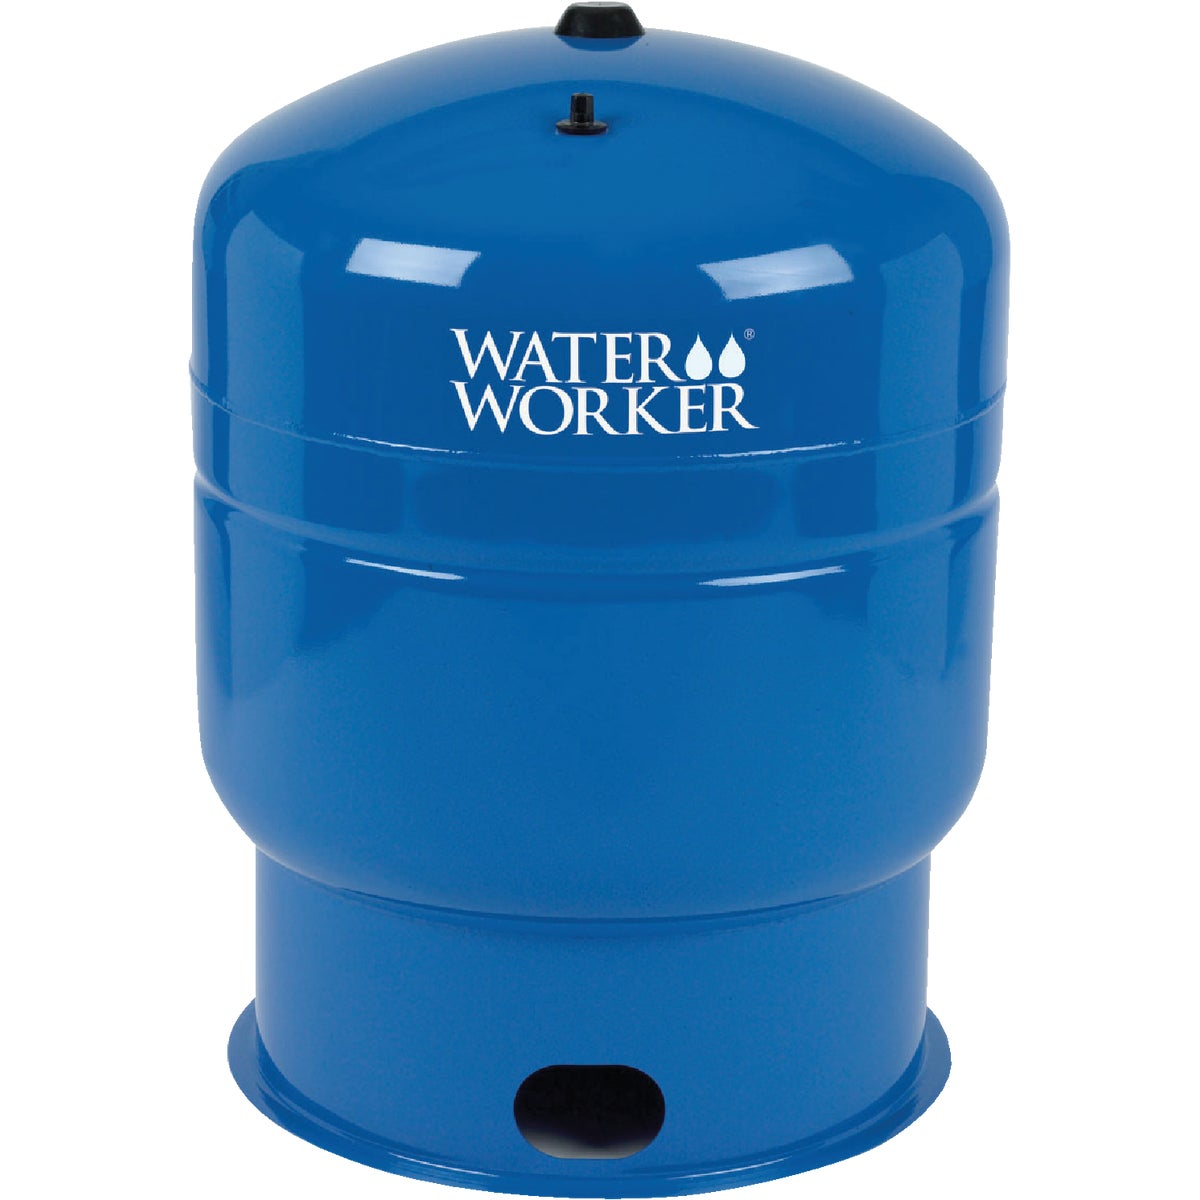 119 GAL VERT WELL TANK - HT-119B by Water Worker